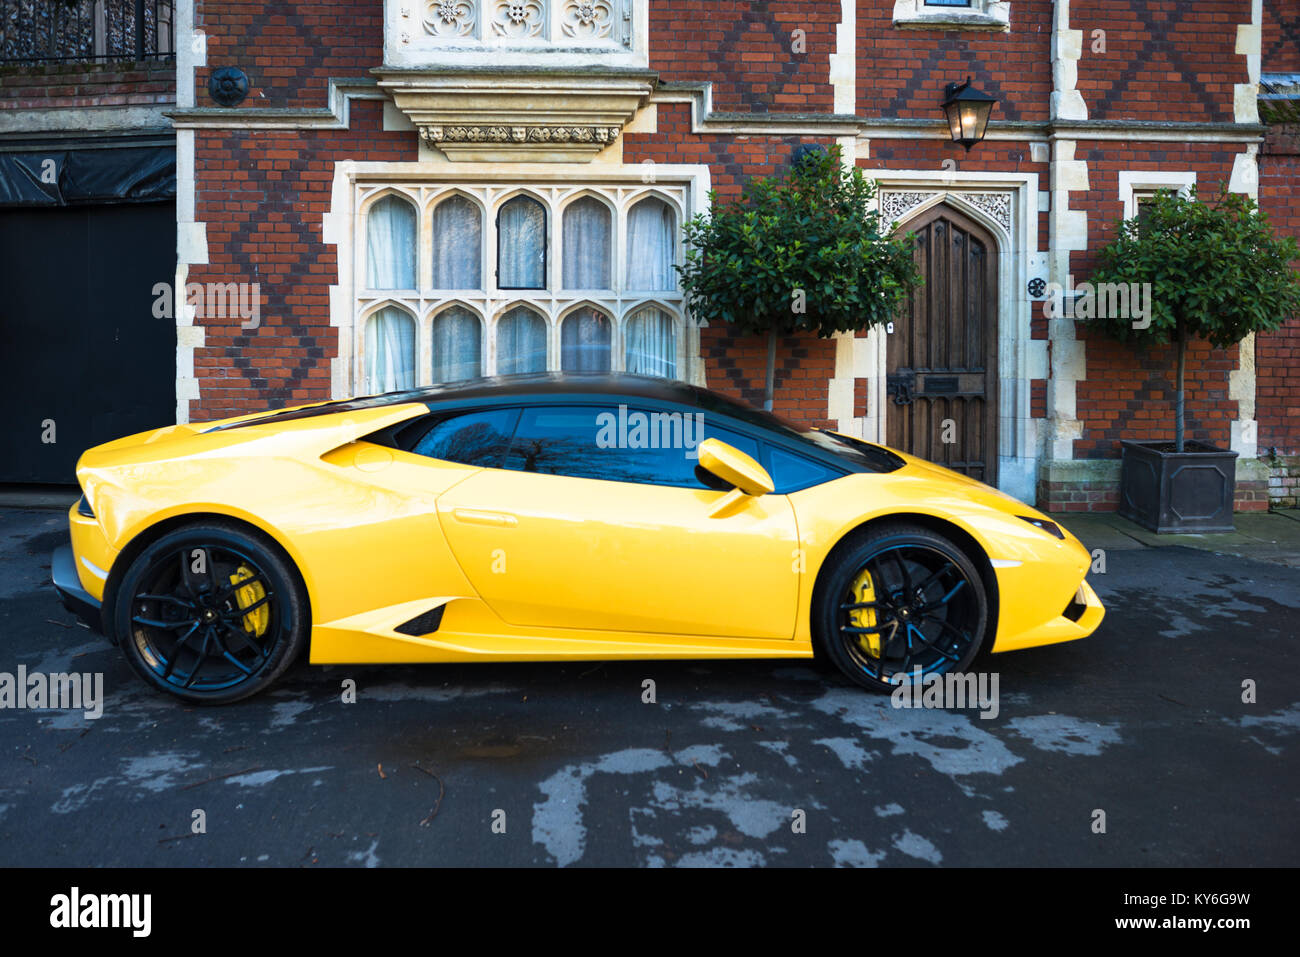 yellow-lamborghini-parked-outside-grand-